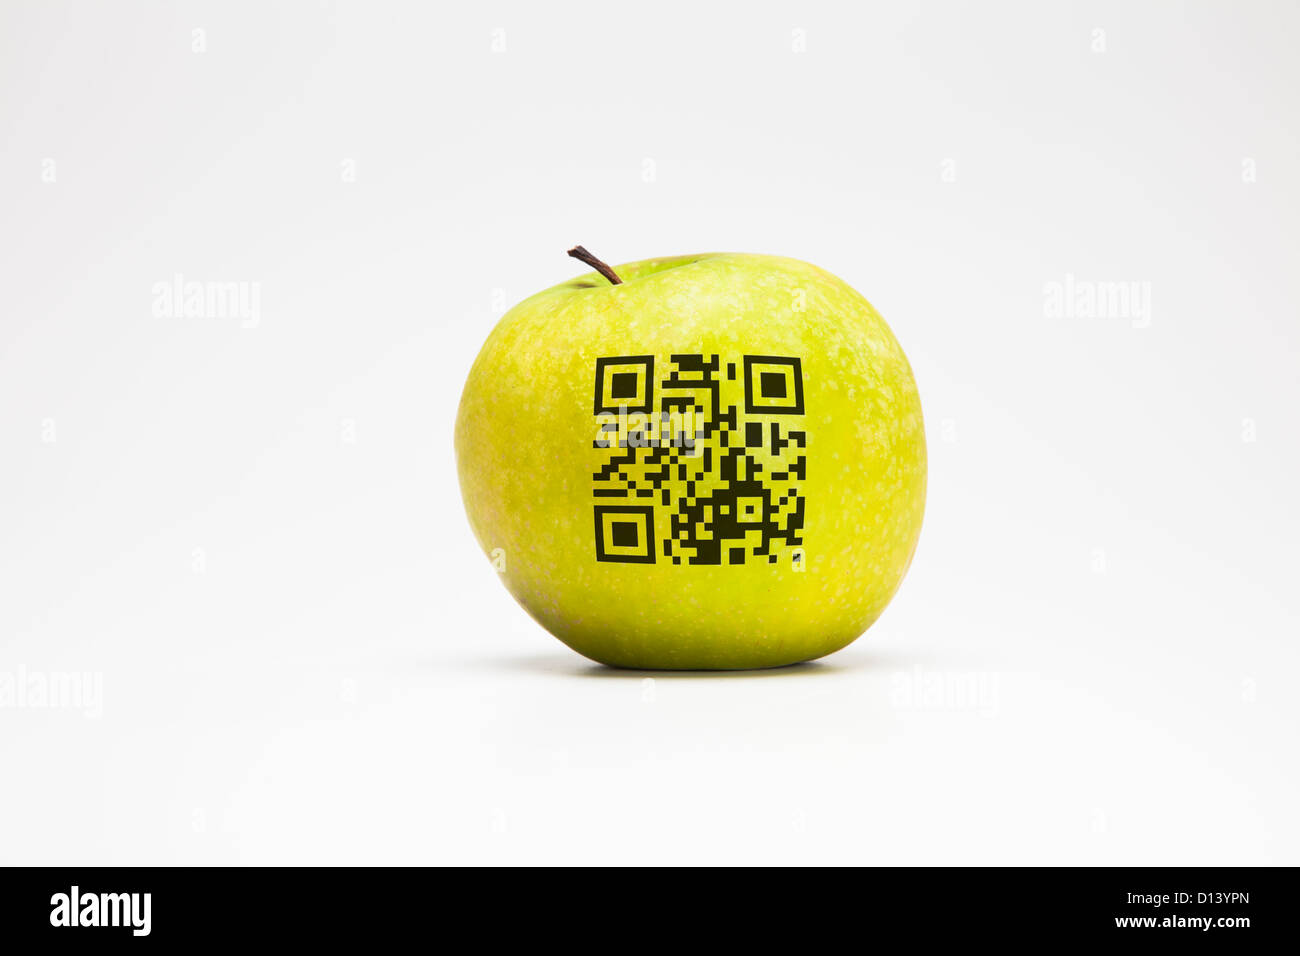 Apple with QR code - Stock Image